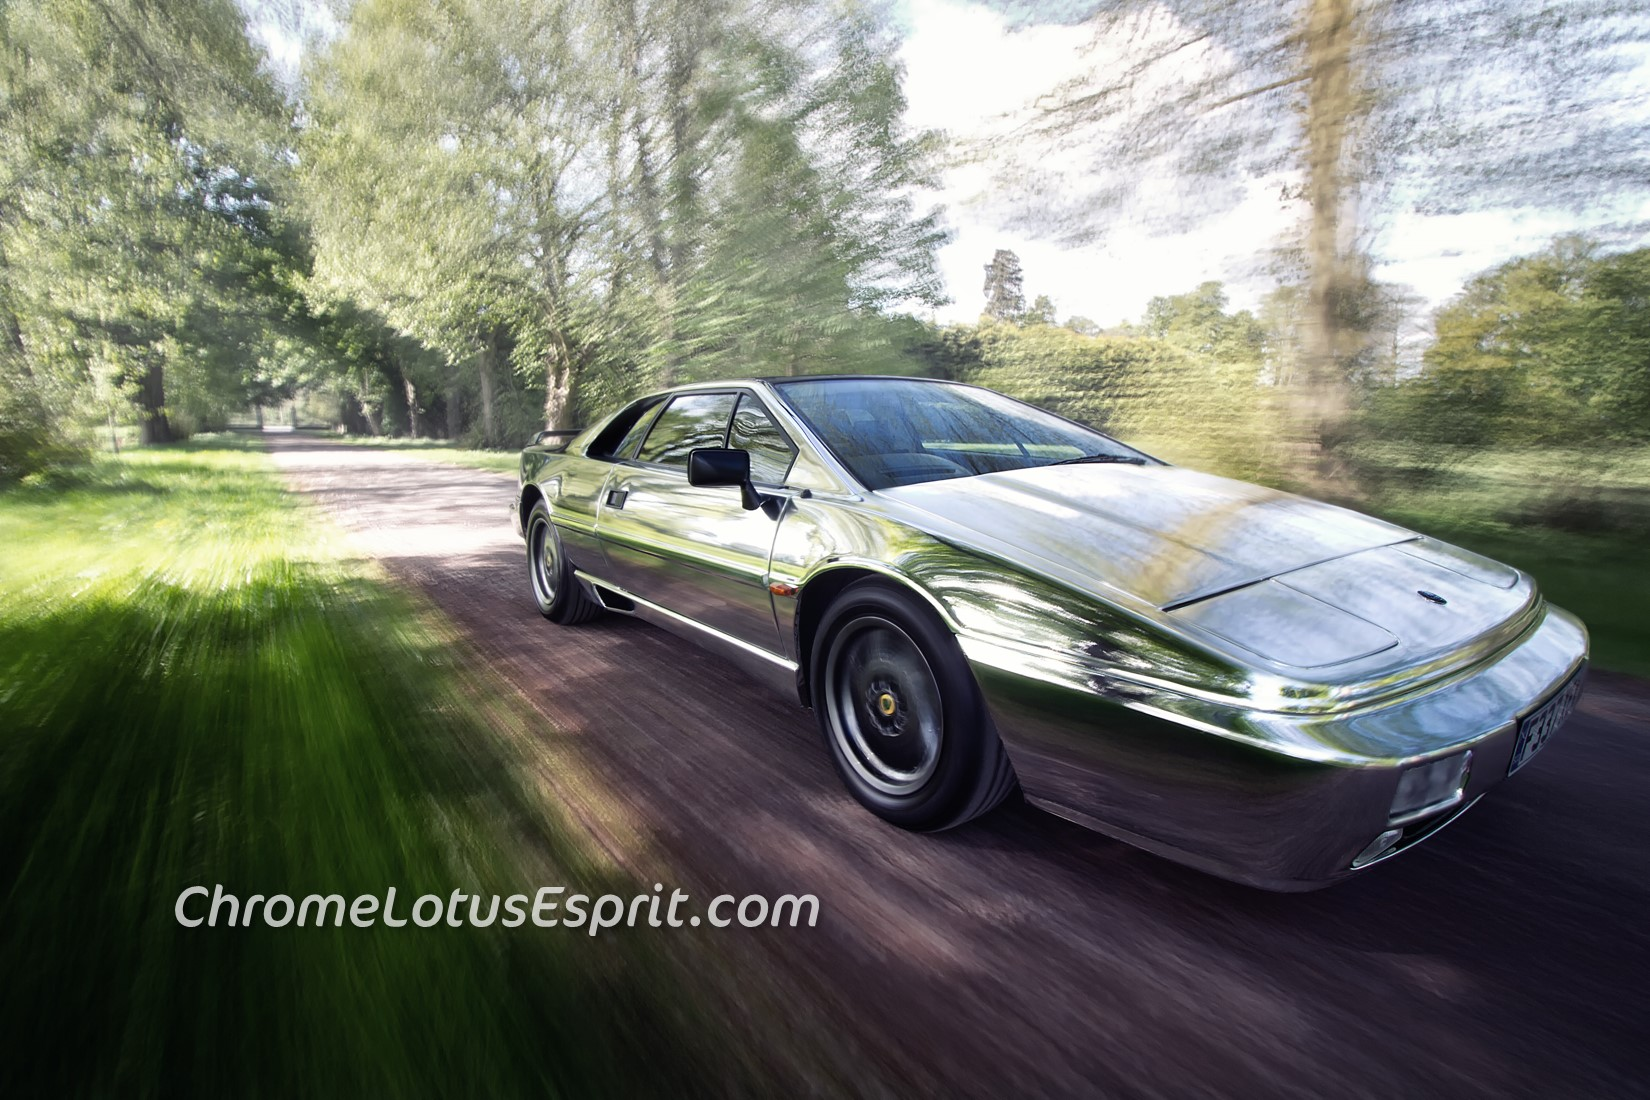 Chrome-Lotus-Esprit-for-sale-02